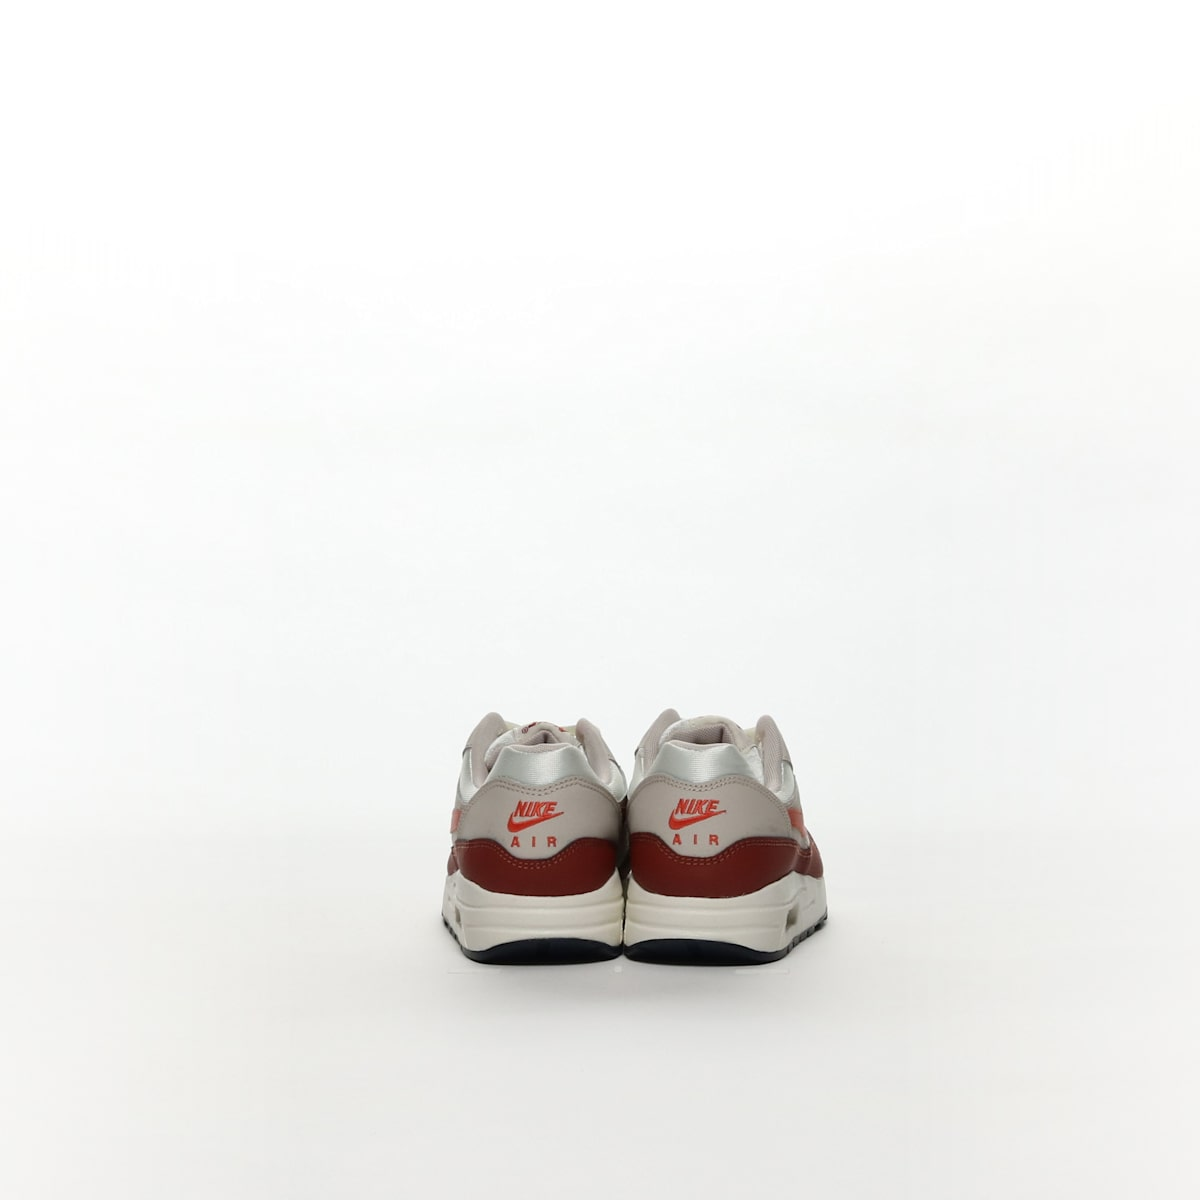 separation shoes 4bede 88aa8 ... NIKE AIR MAX 1 ...